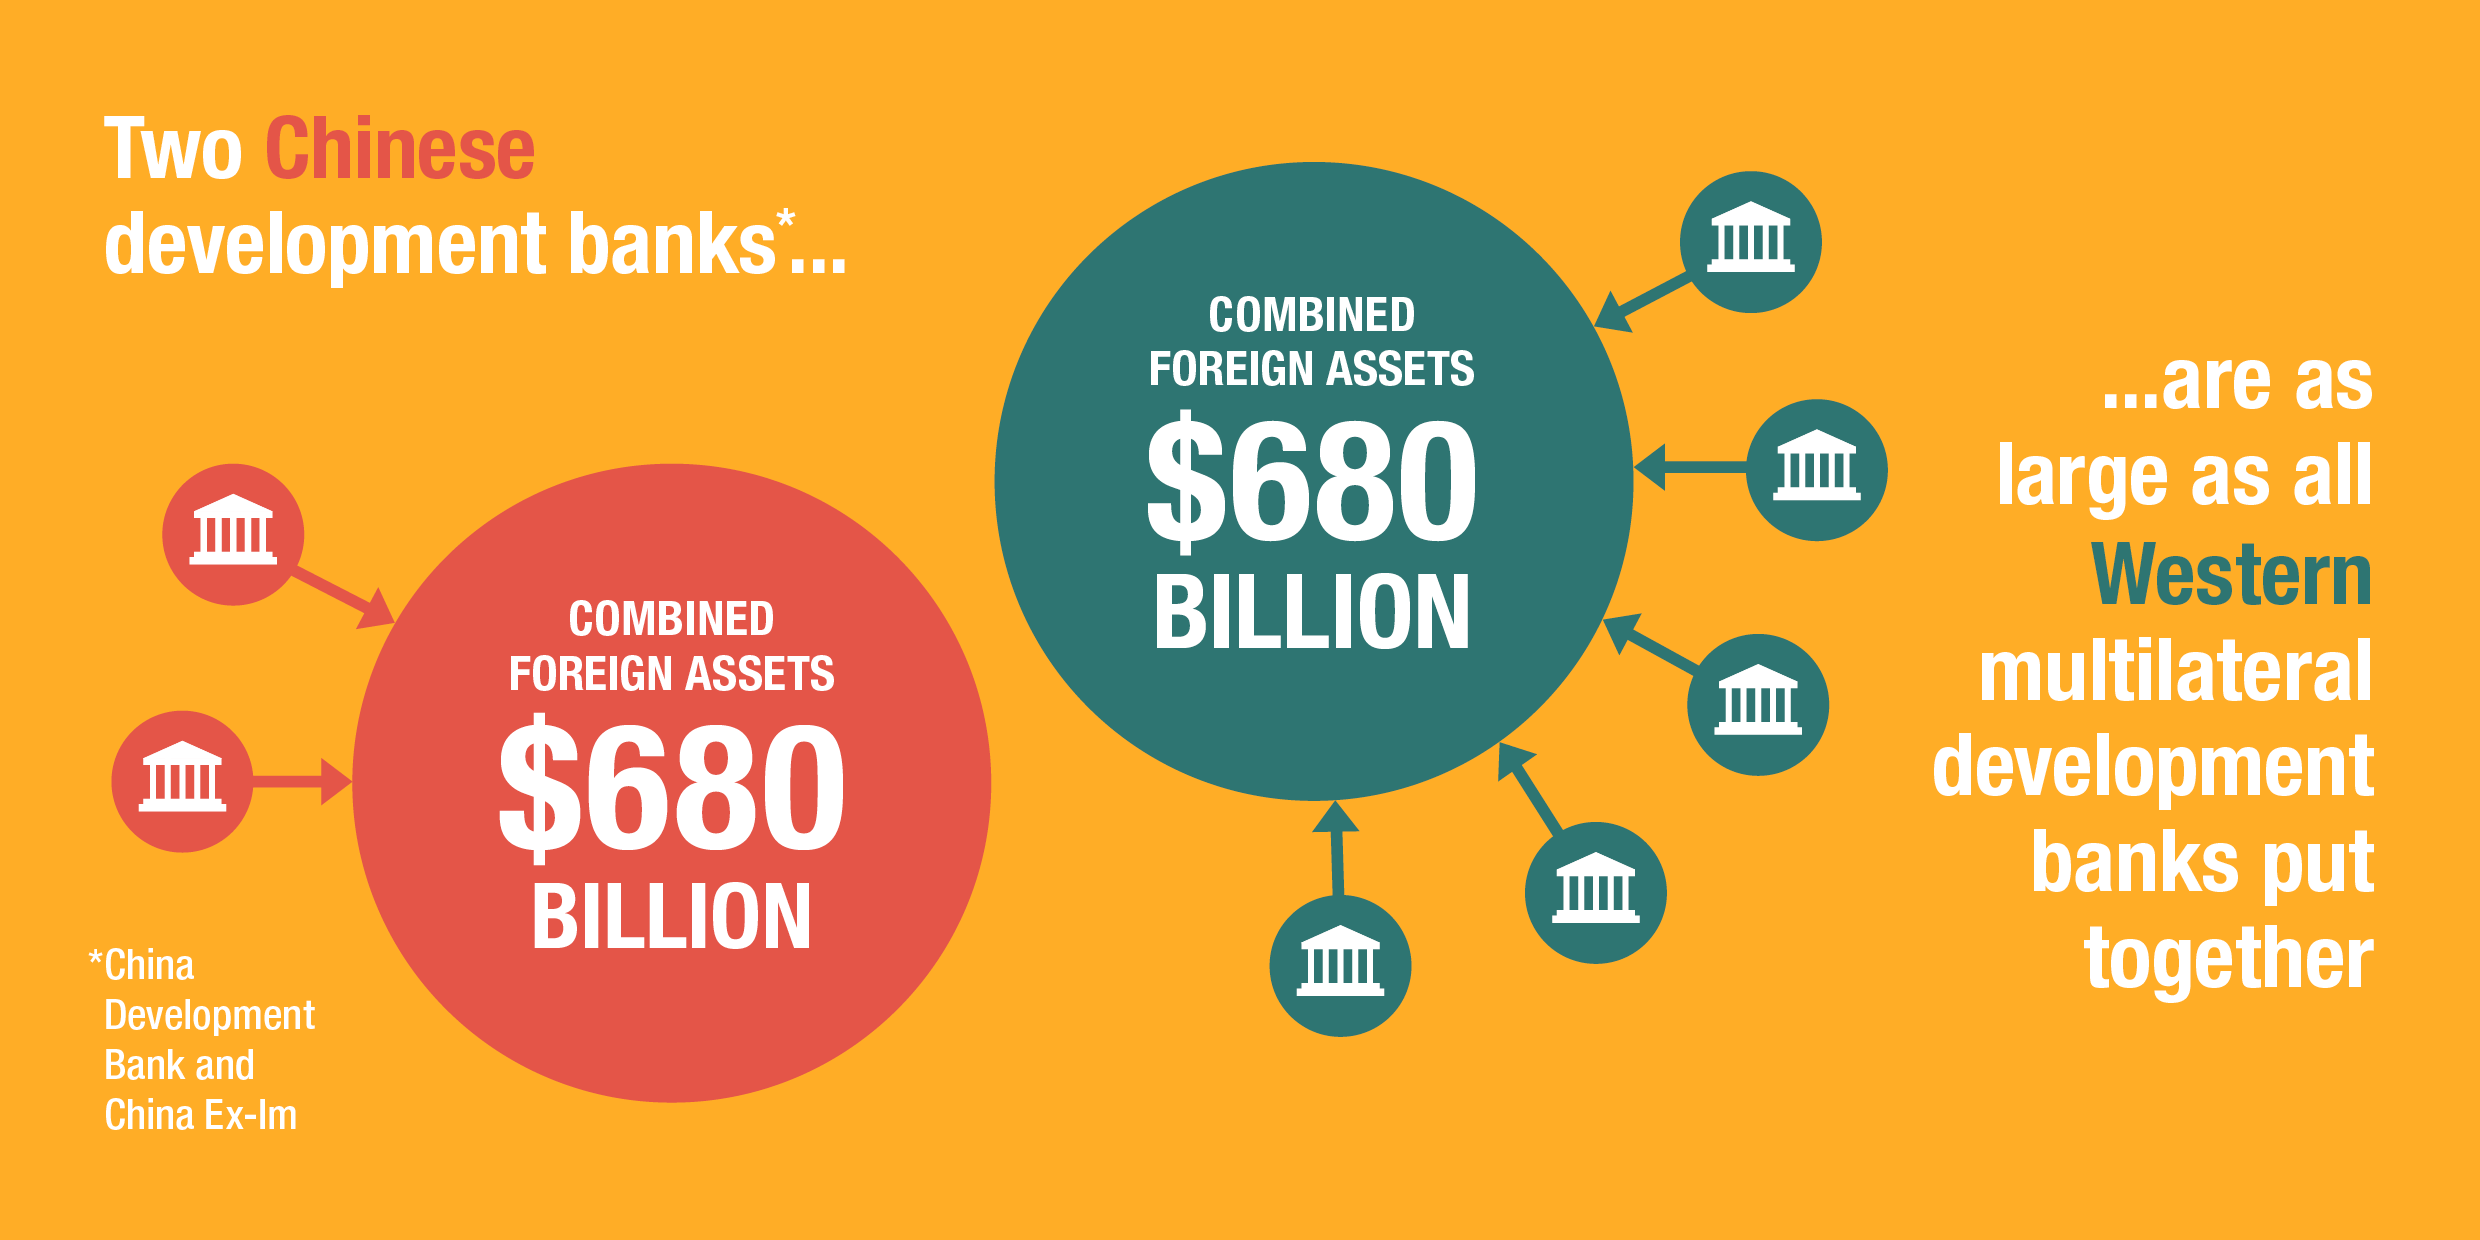 Two Chinese development banks are as large as all Western multilateral development banks put together